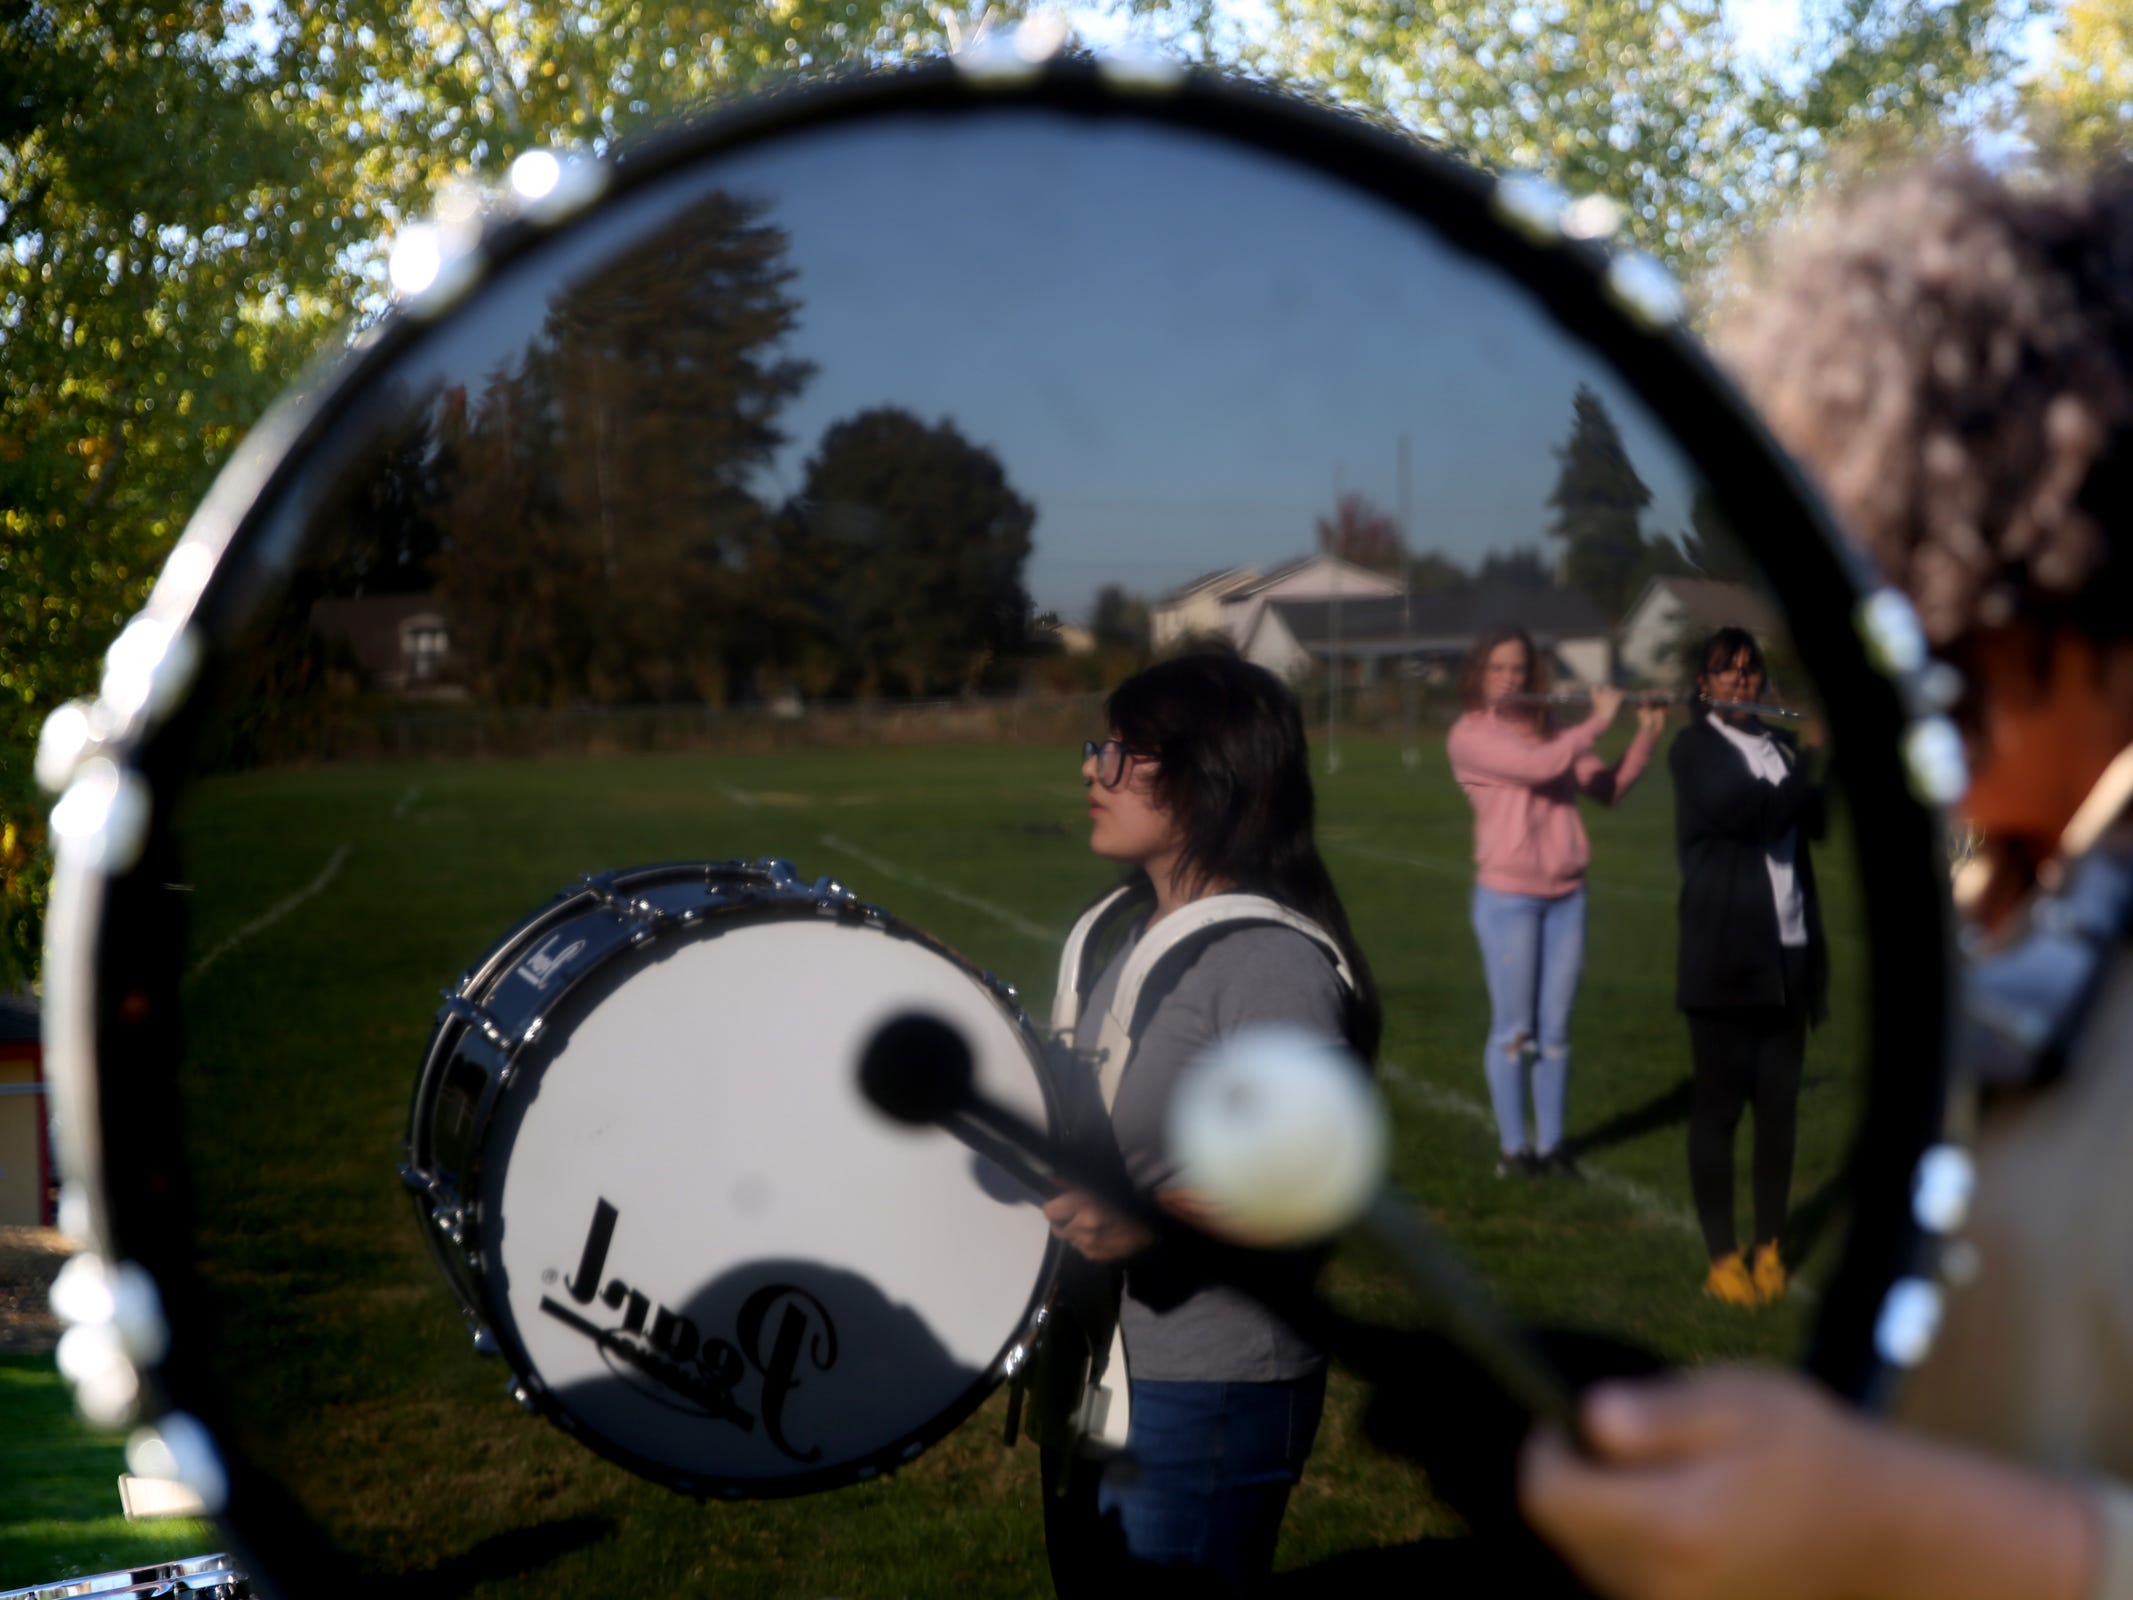 The McKay marching band drum line rehearses at McKay High School in Salem on Thursday, Sep. 27, 2018.